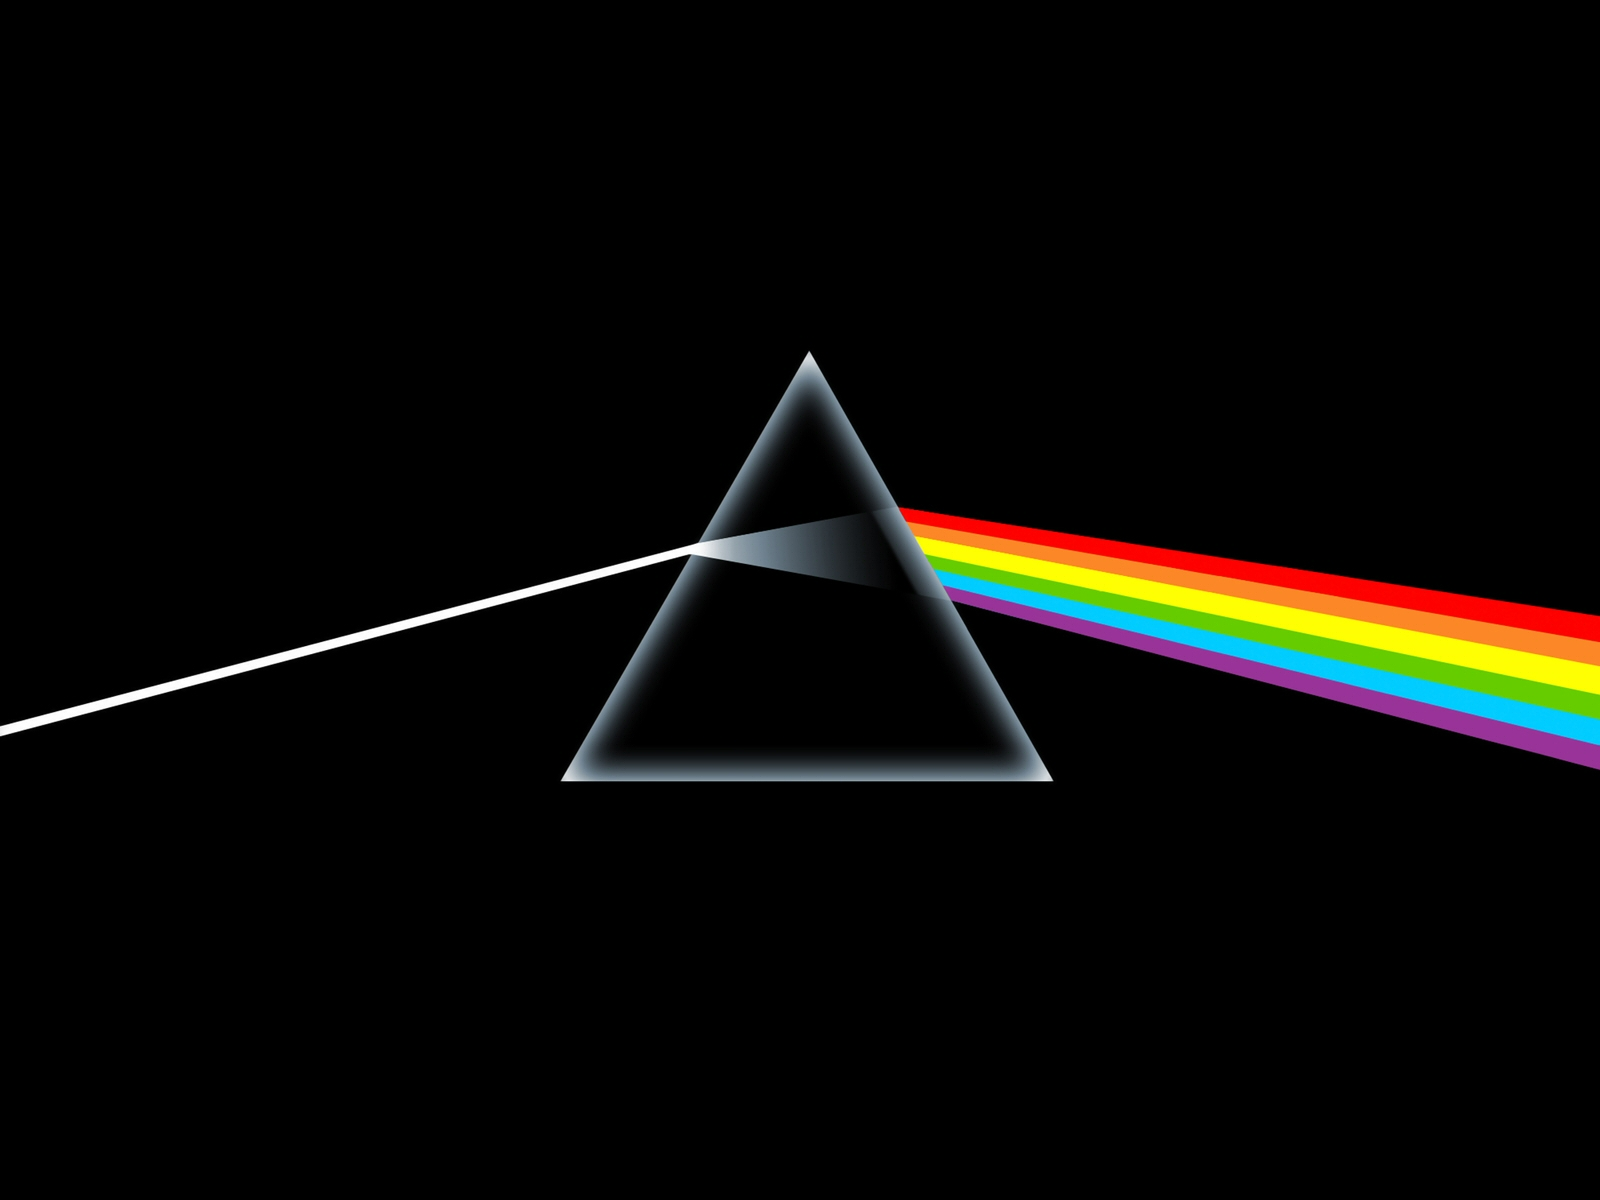 Pink Floyd - Dark Side of the Moon Wallpaper